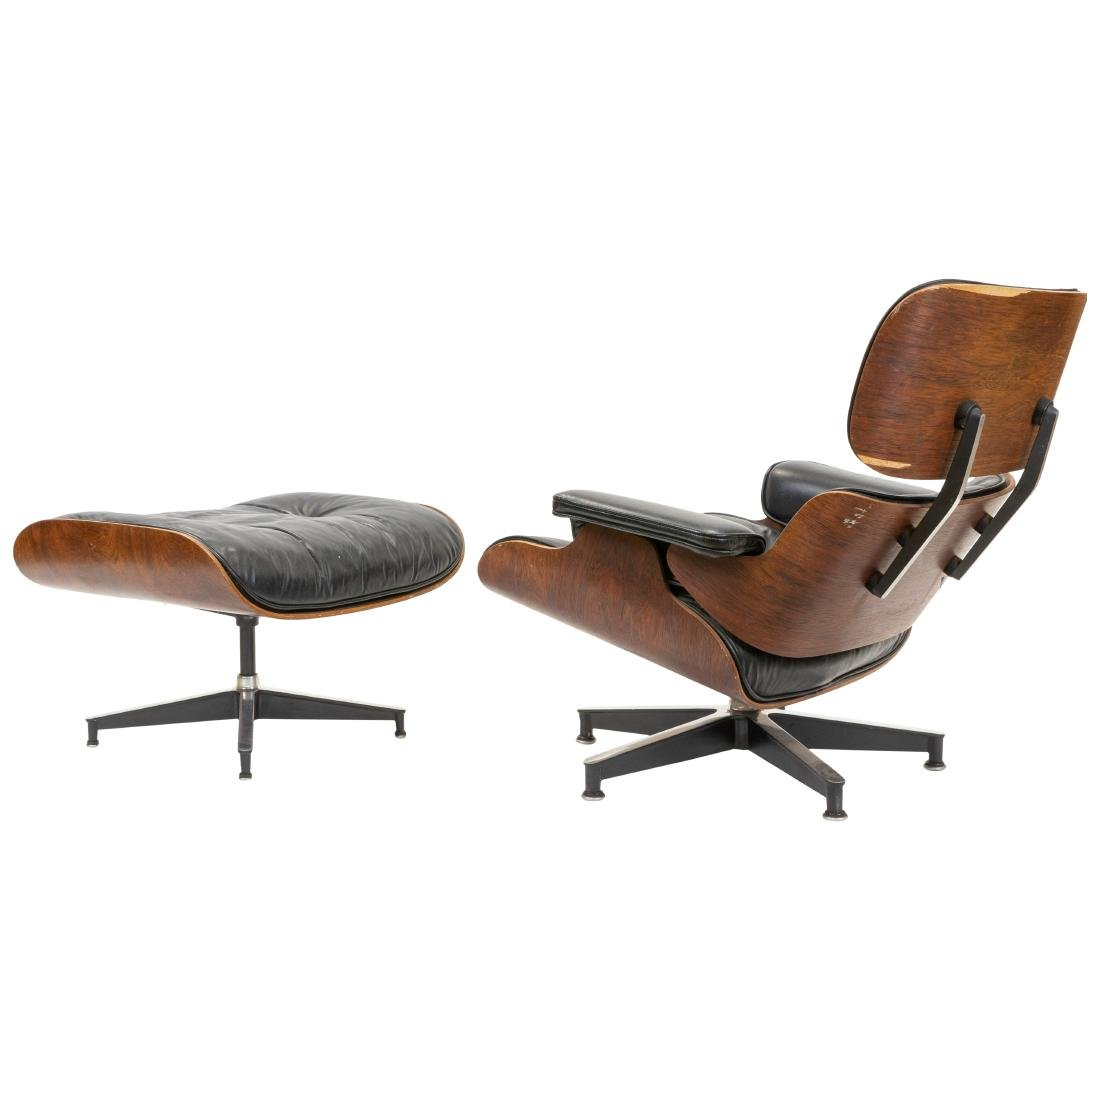 Charles & Ray Eames - Rosewood Lounge and Ottoman